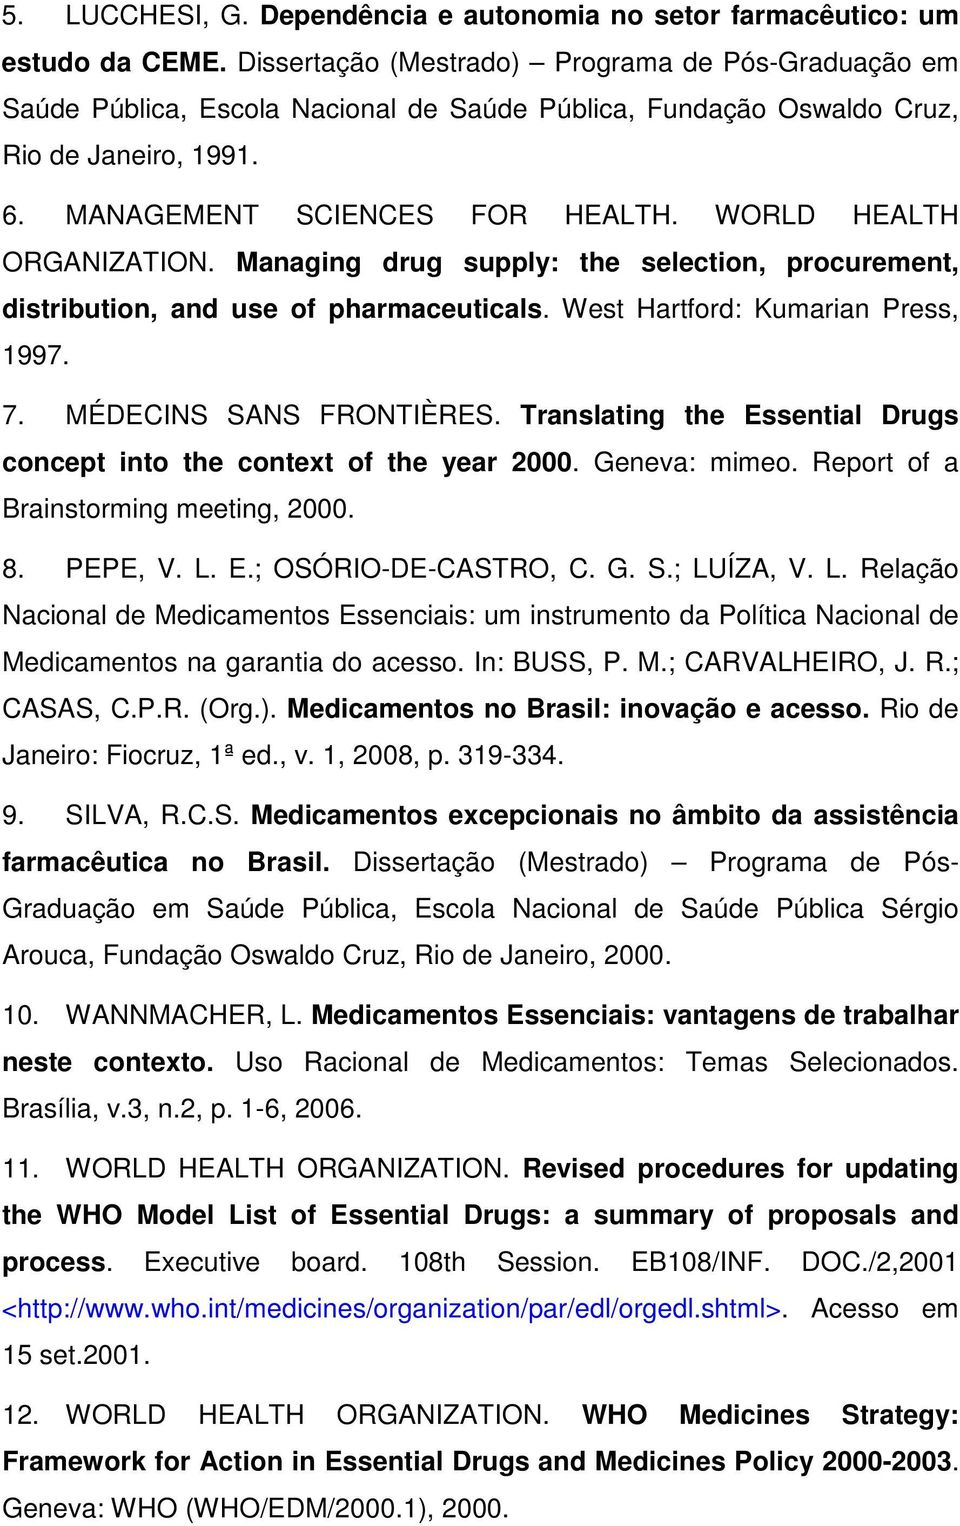 WORLD HEALTH ORGANIZATION. Managing drug supply: the selection, procurement, distribution, and use of pharmaceuticals. West Hartford: Kumarian Press, 1997. 7. MÉDECINS SANS FRONTIÈRES.